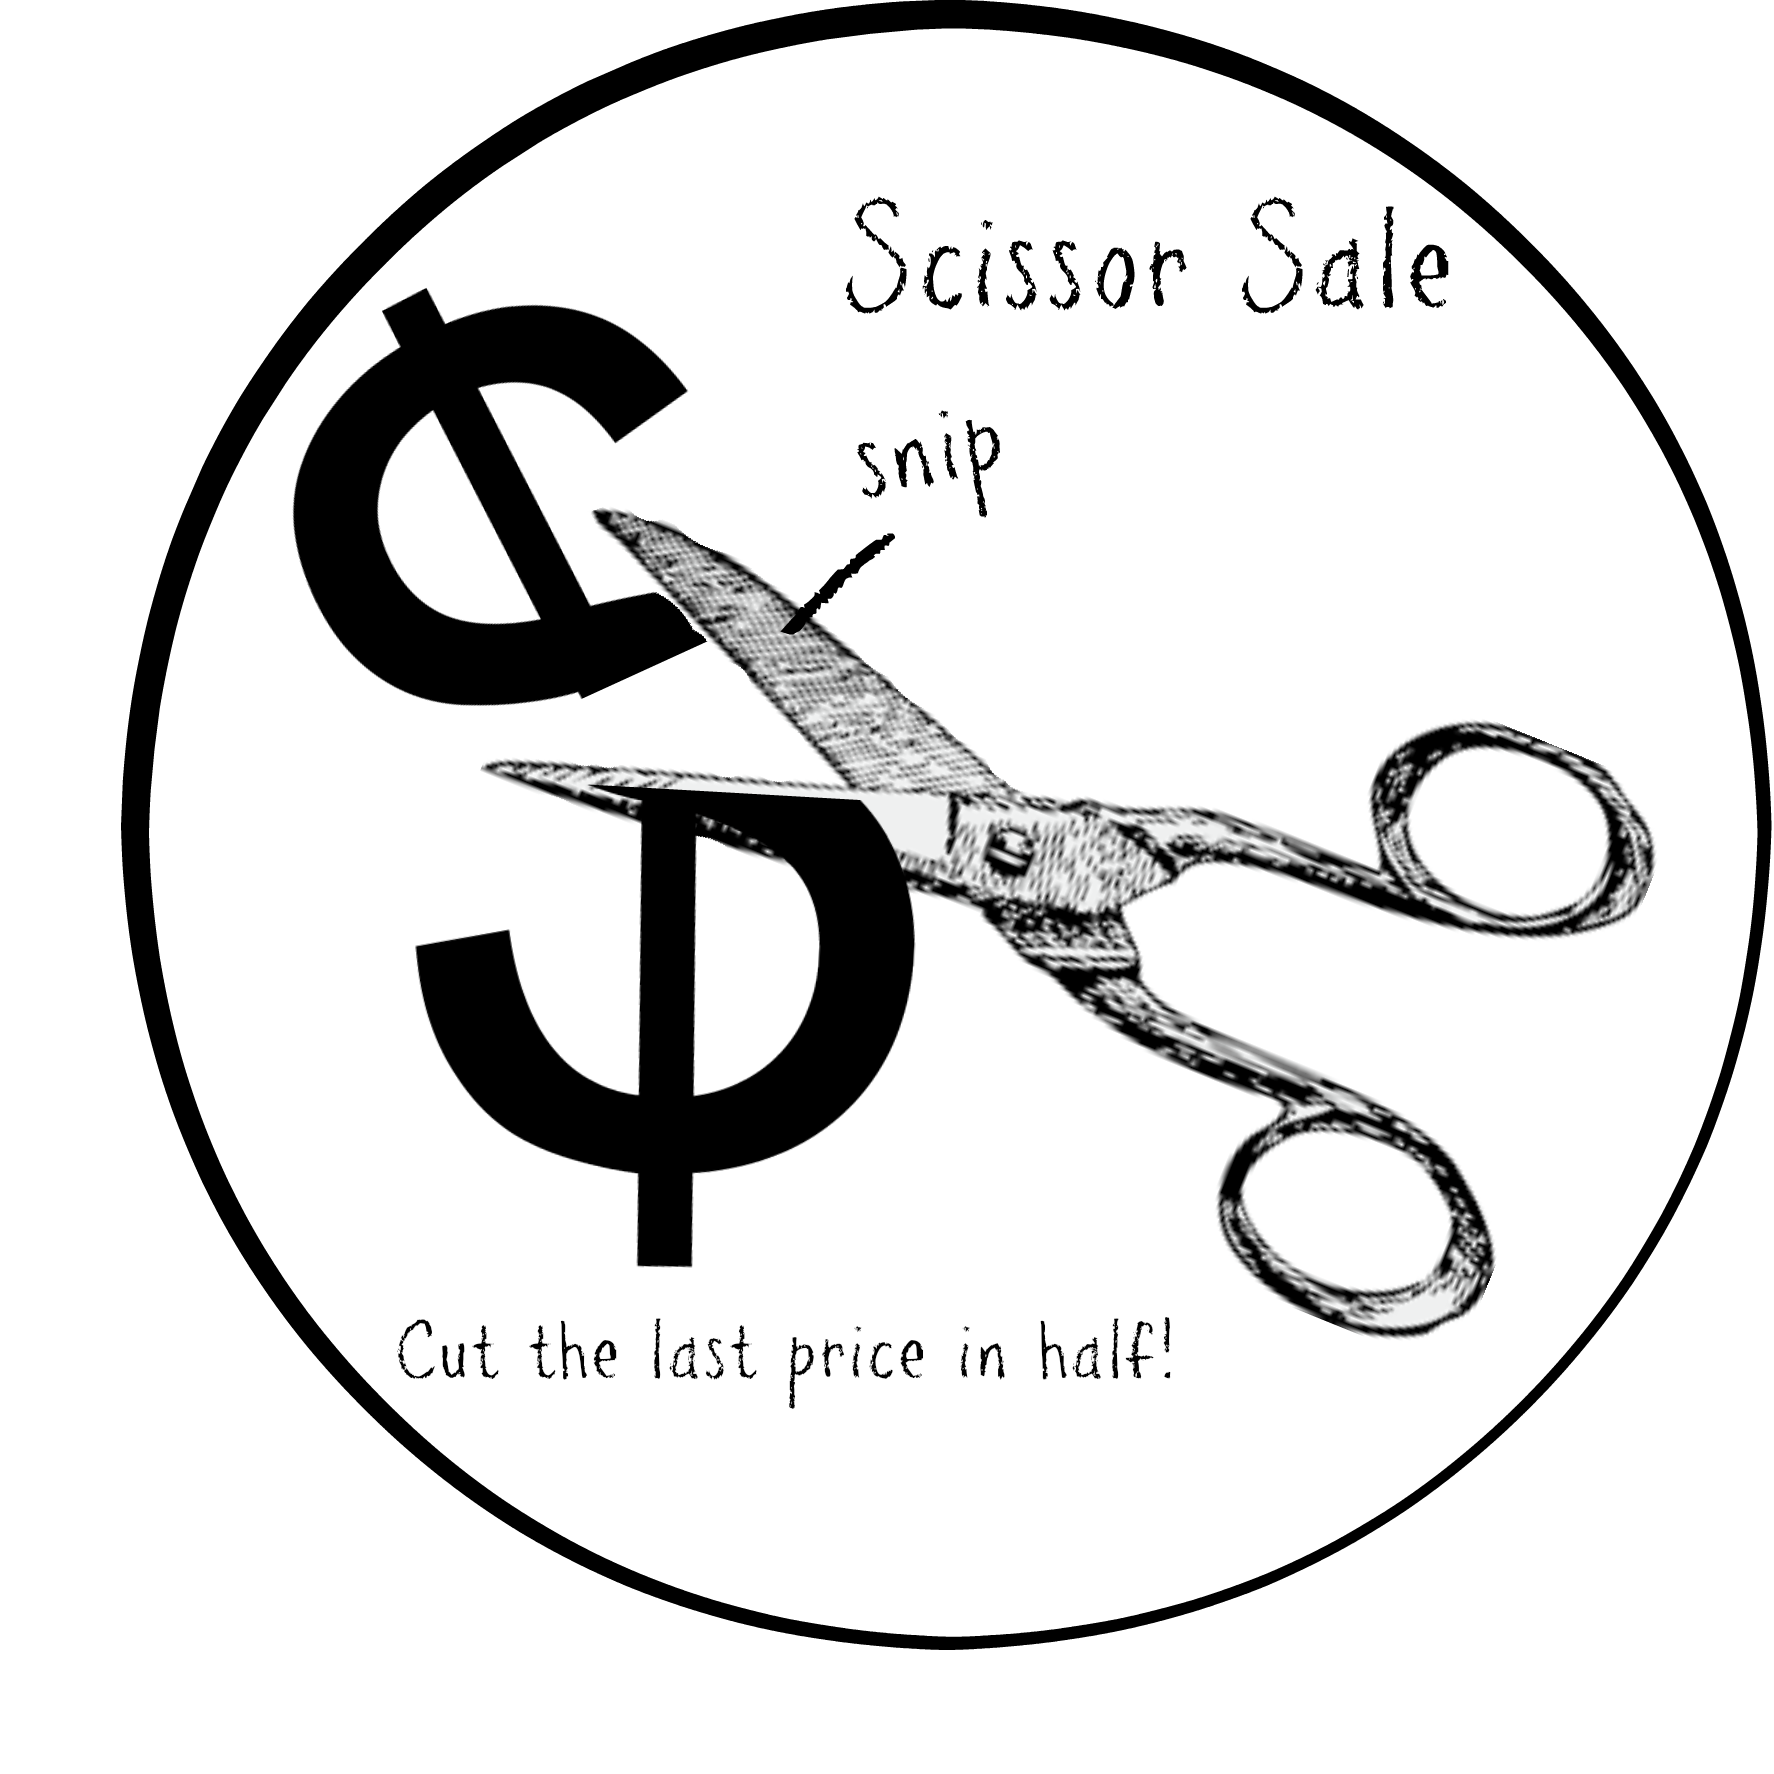 scissor sale badge